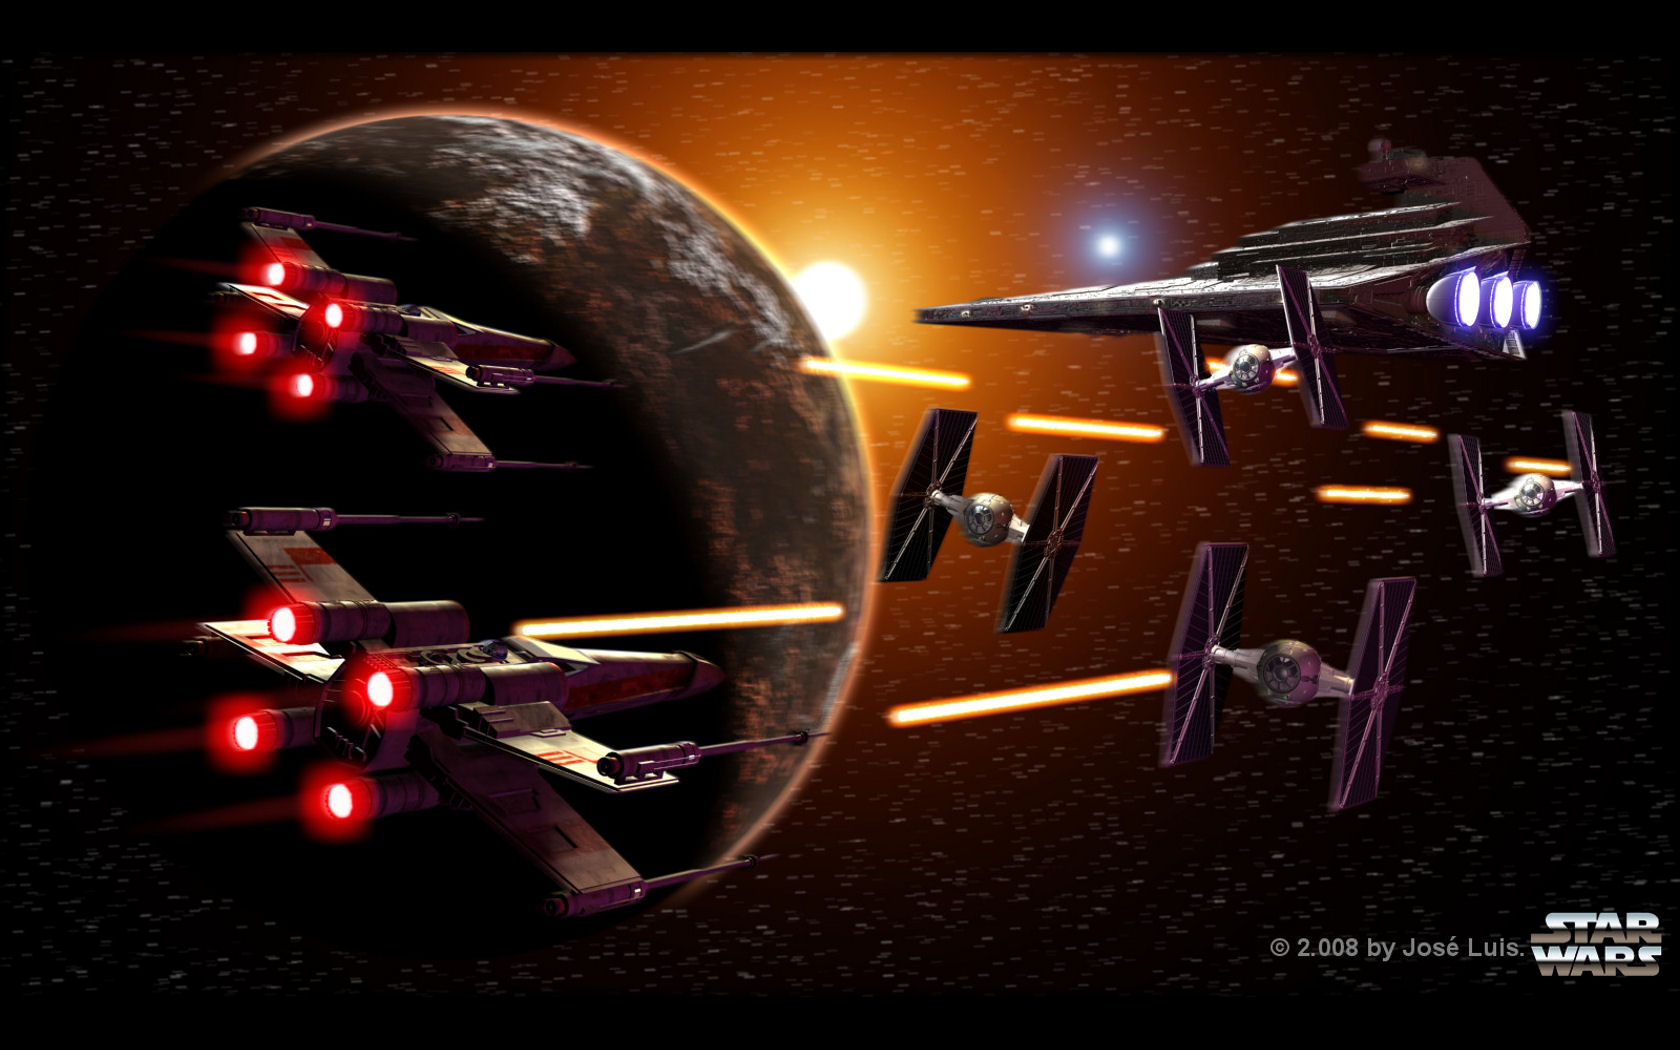 Star Wars Wallpaper Set 5 Awesome Wallpapers